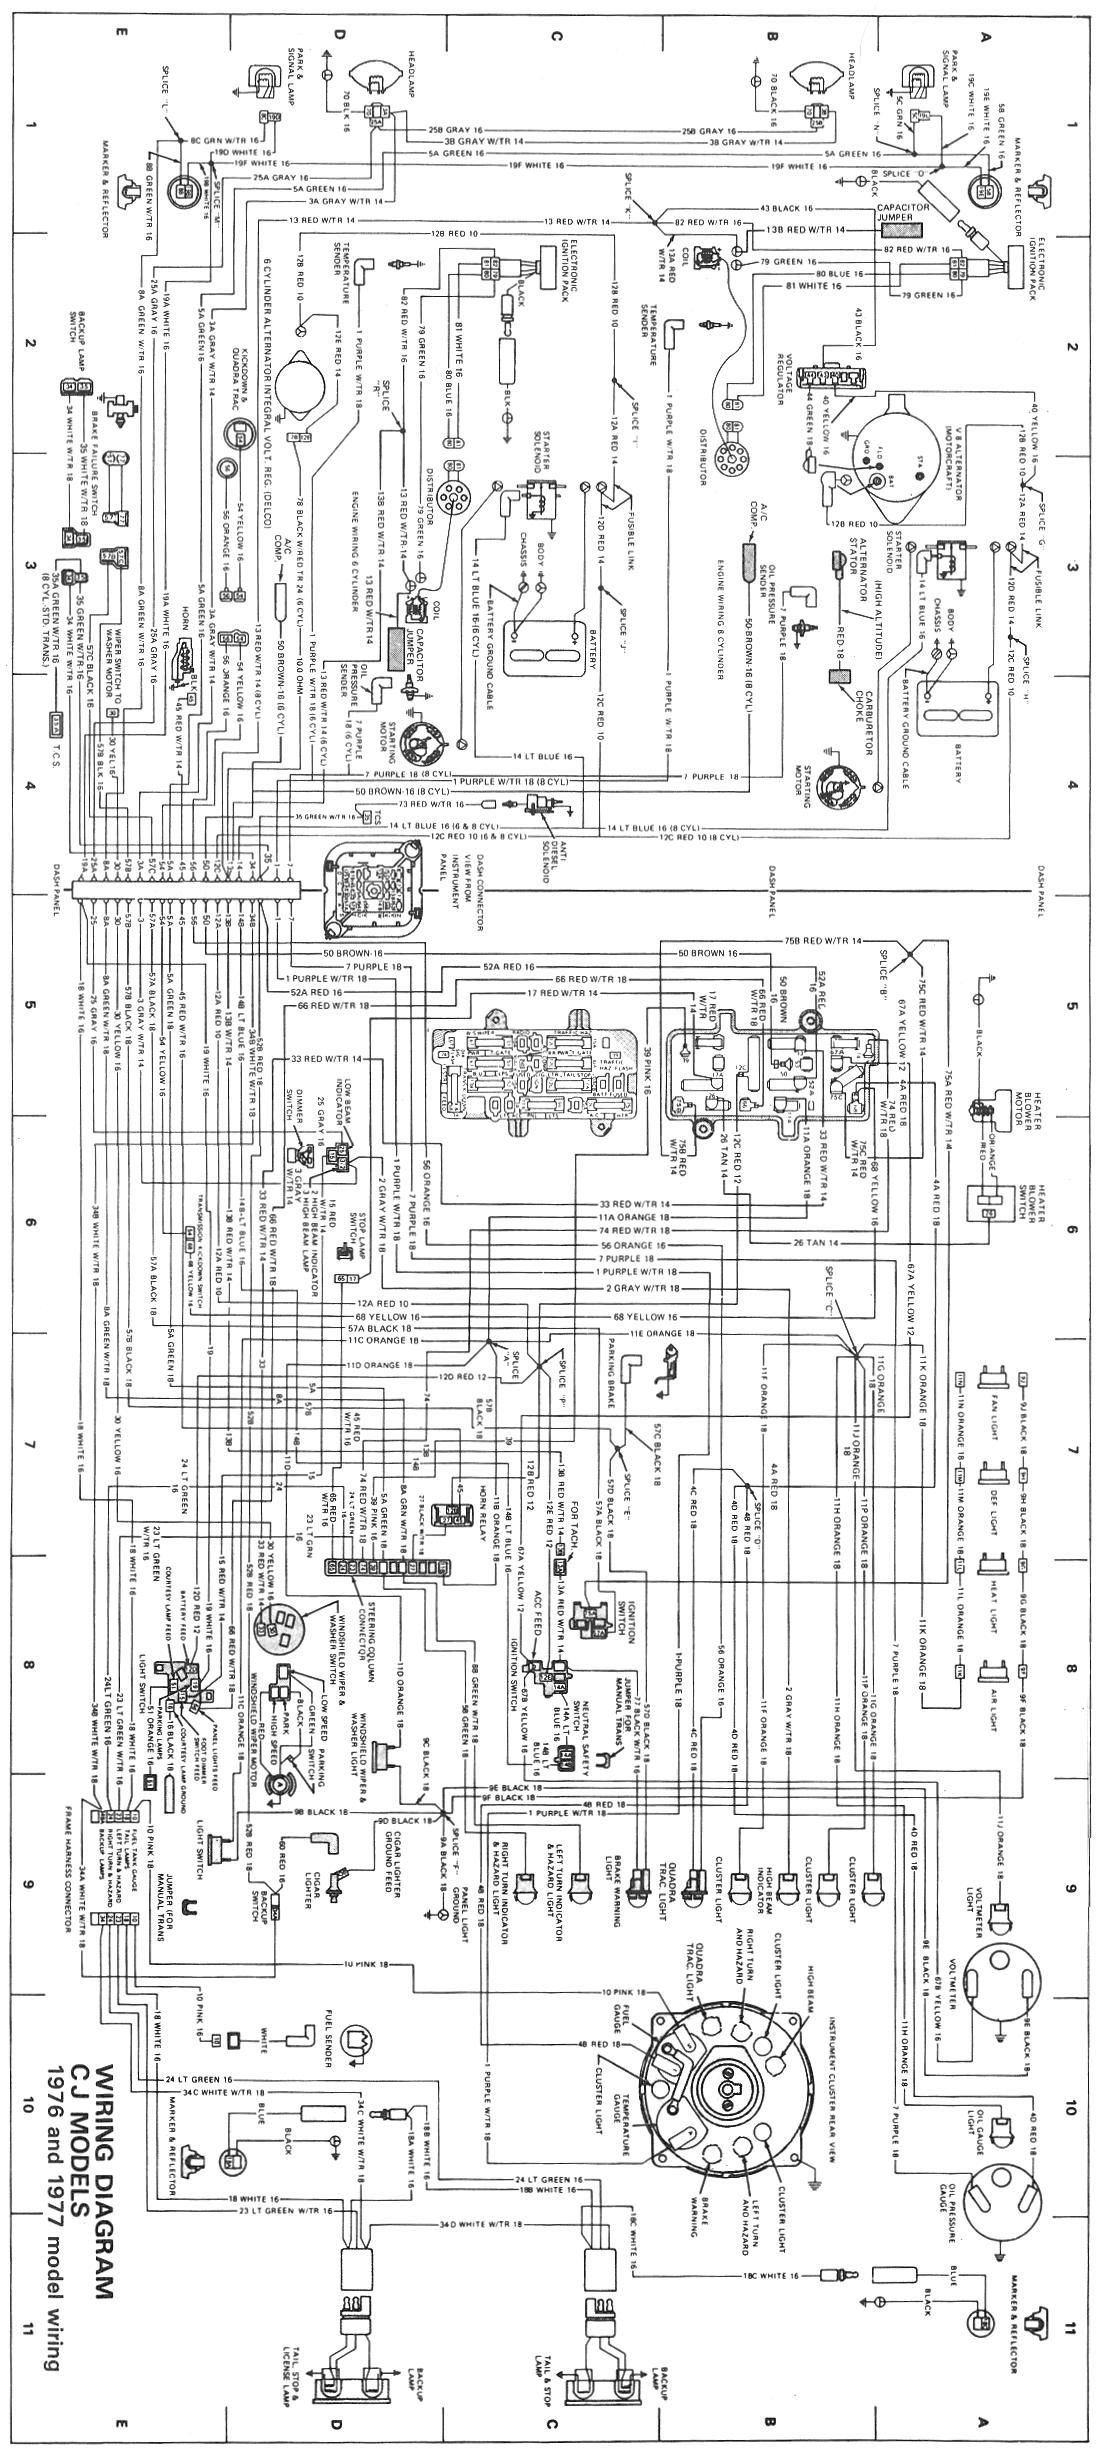 medium resolution of jeep wiring diagrams 1976 and 1977 cj jeep wiring pinterest 1985 jeep cj7 electrical diagram 1977 jeep cj7 diagram